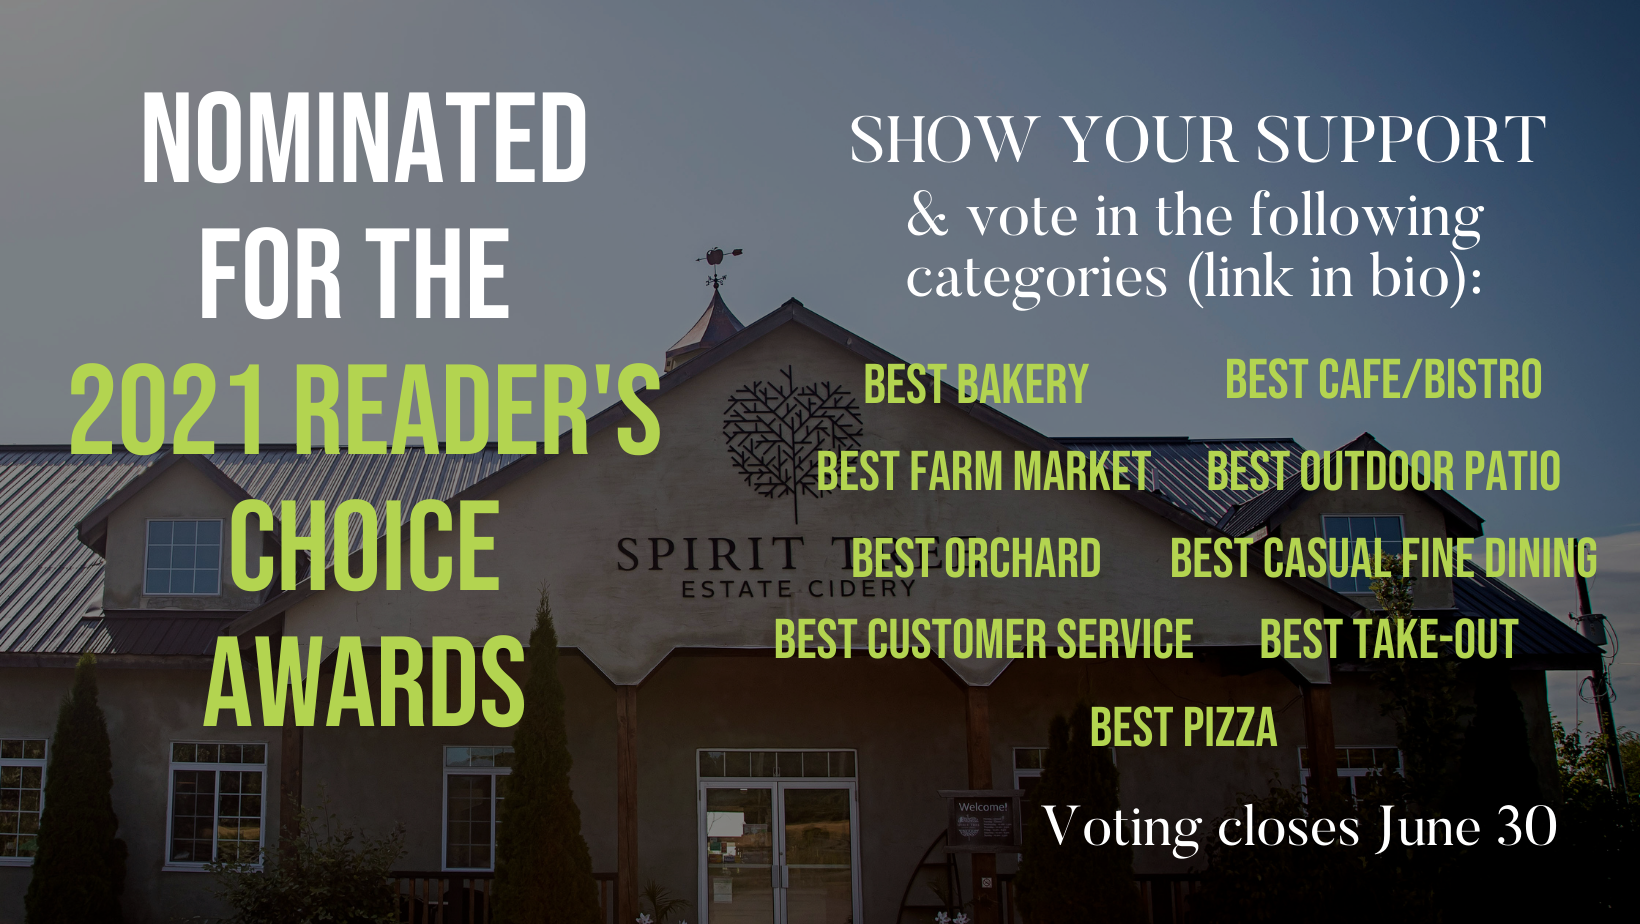 Nominated for the 2021 Readers Choice Awards